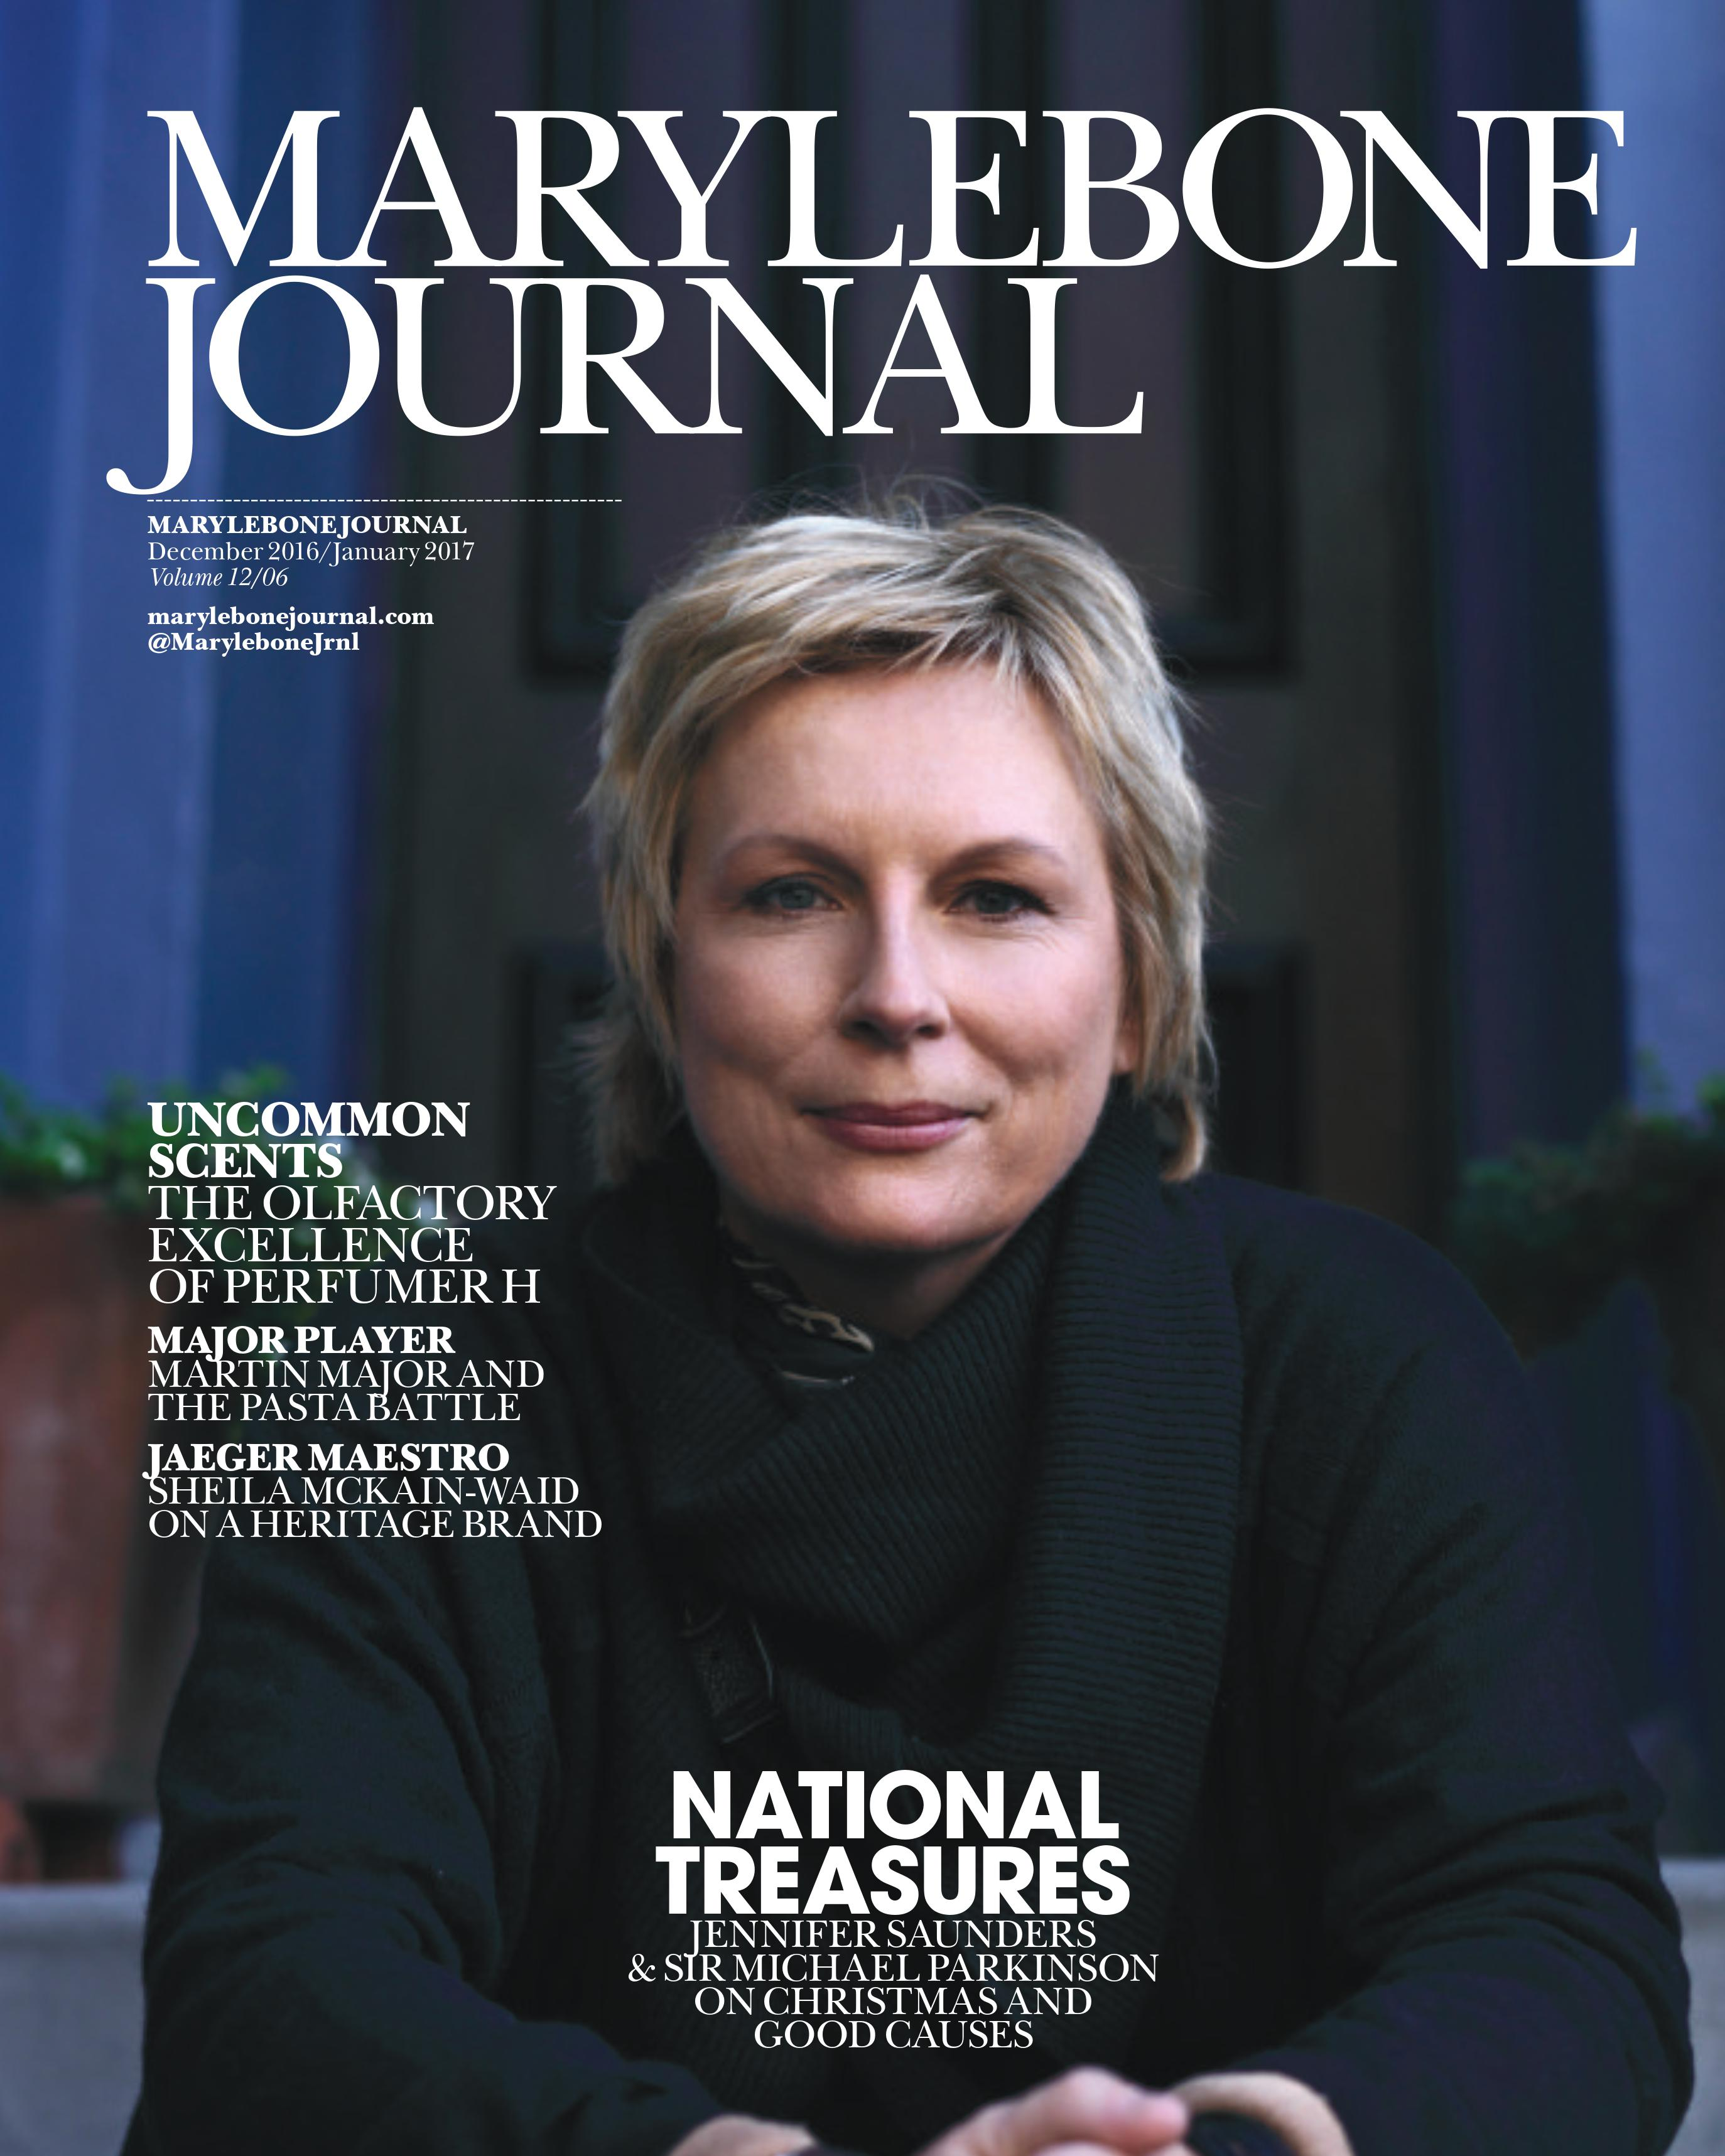 Front cover of December 2016 edition of the Marylebone Journal